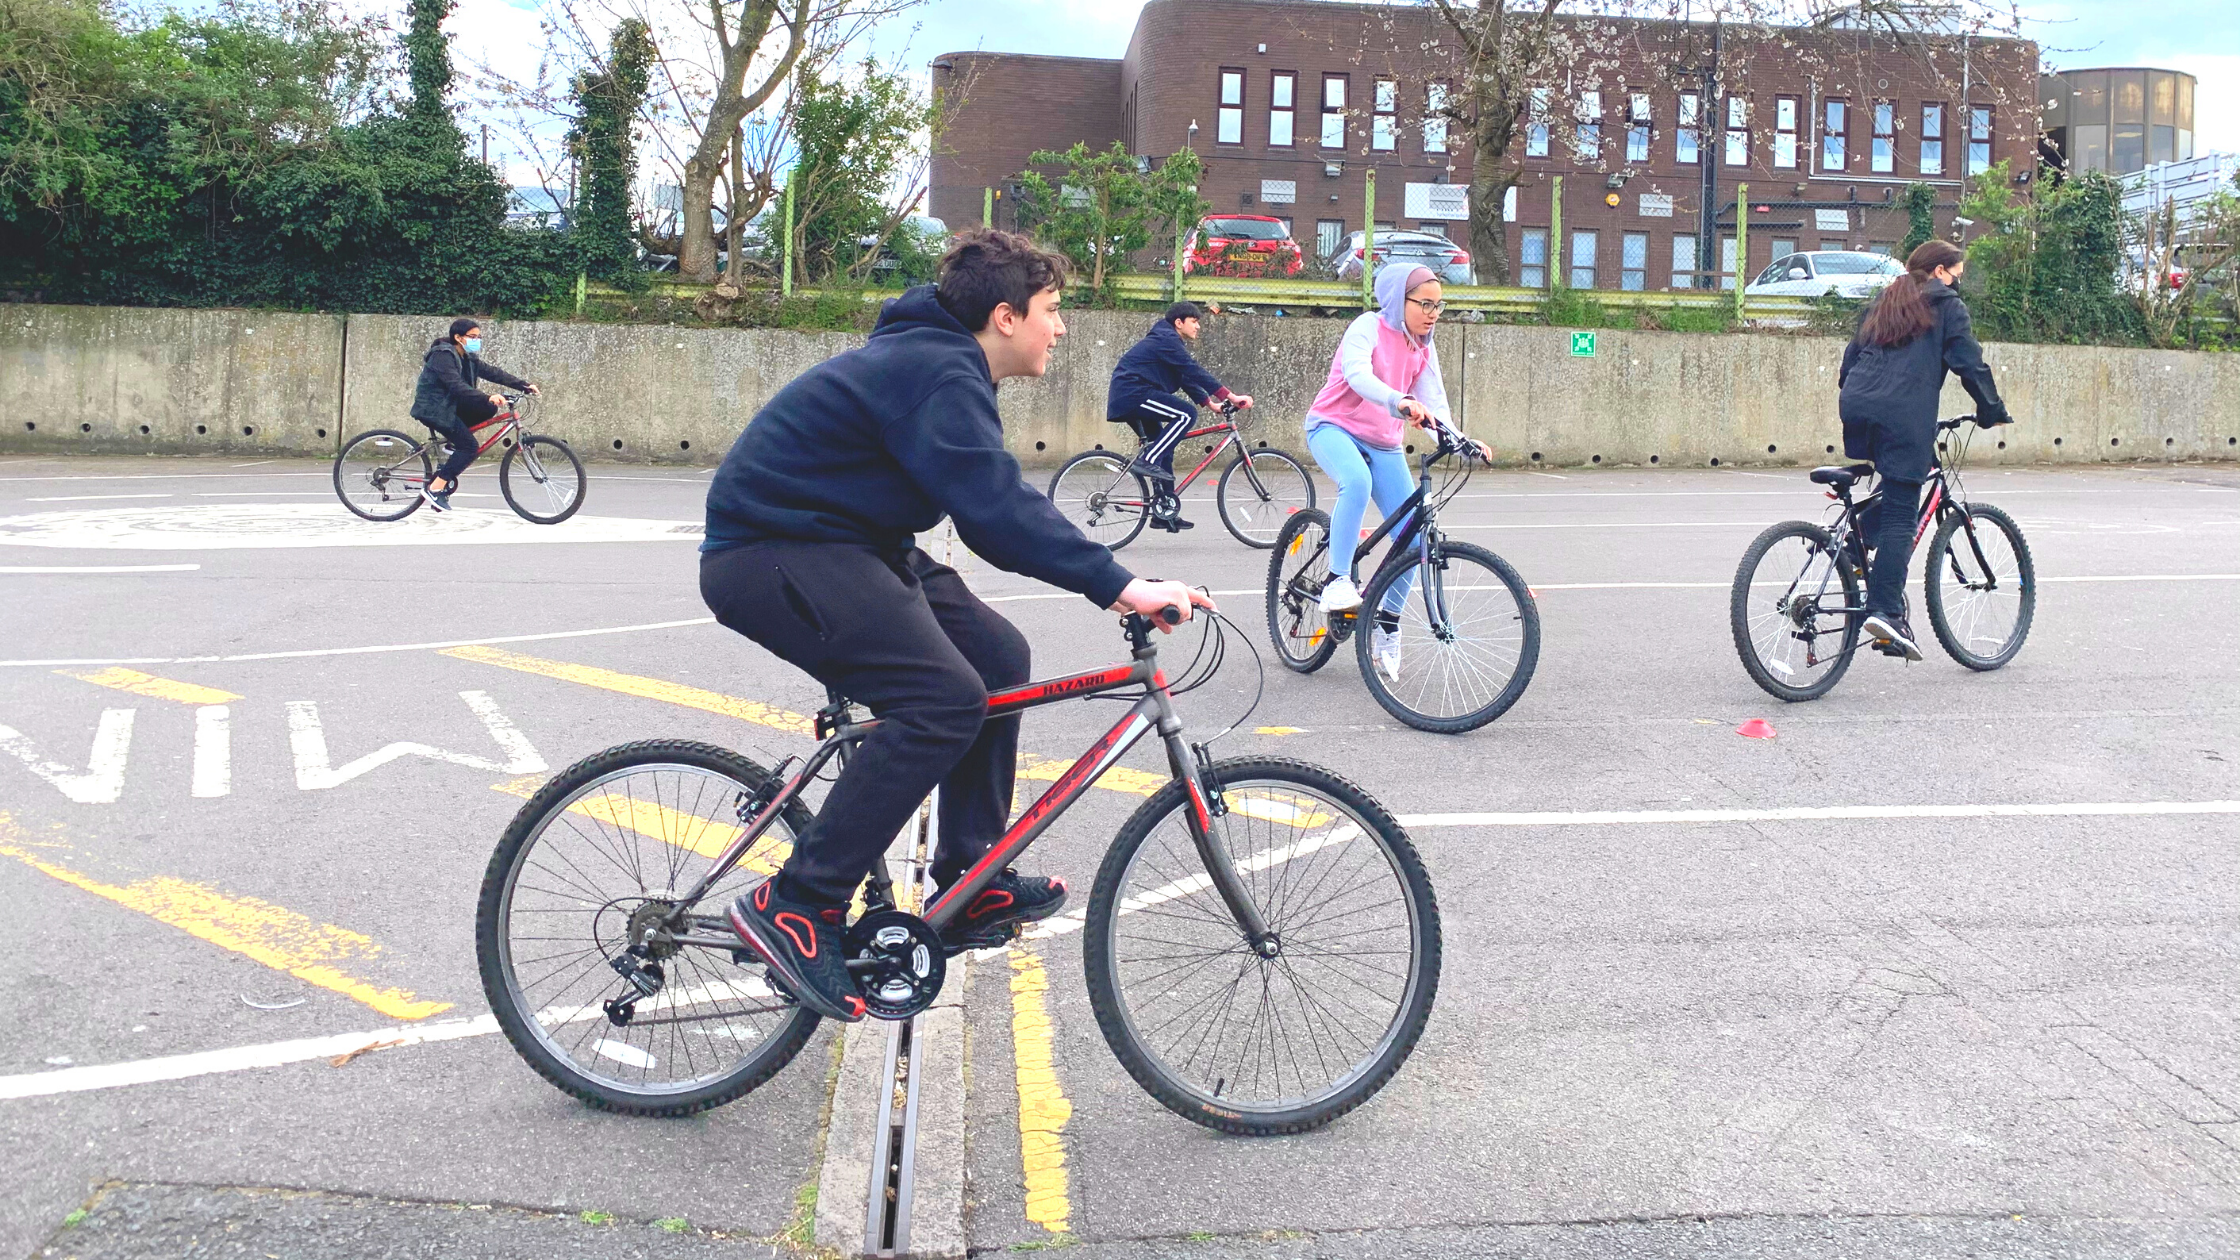 Get on your bike: The benefits of cycling